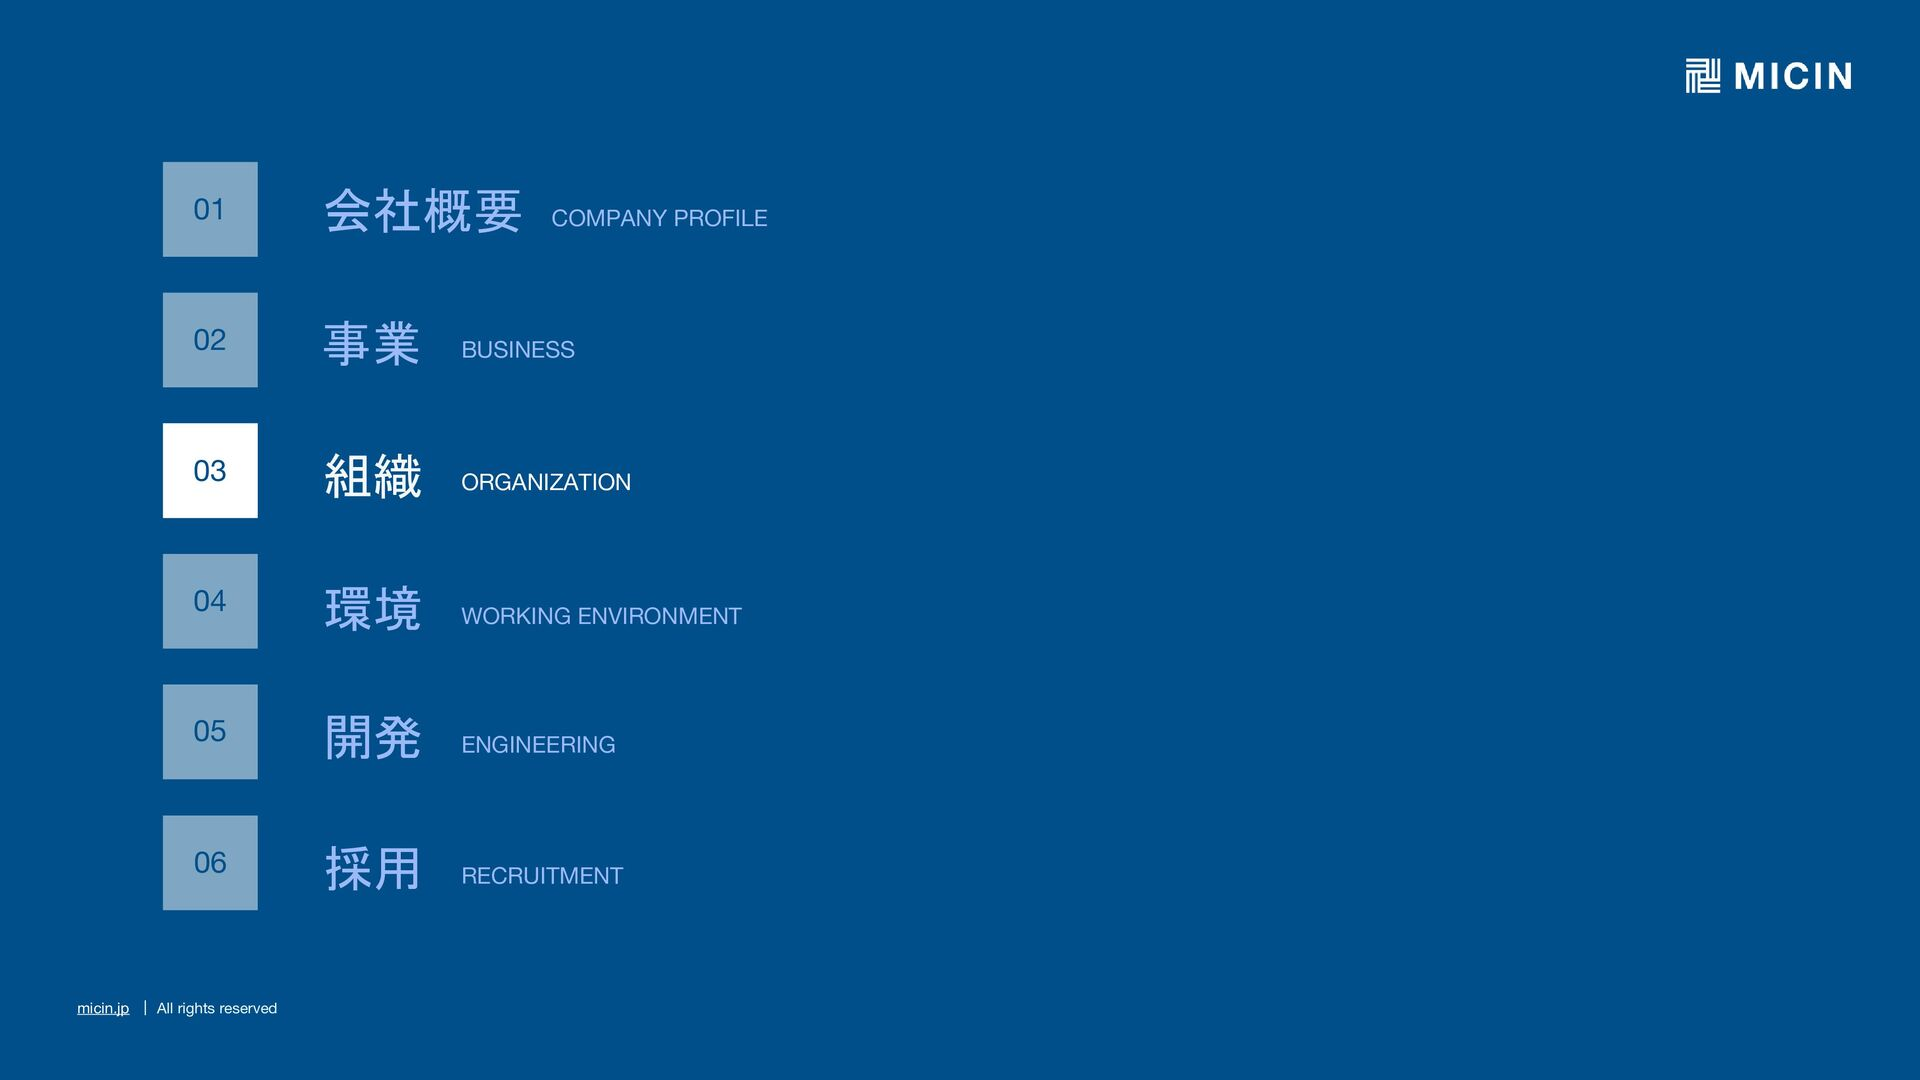 micin.jp   All rights reserved 19 事業 BUSINESS 保...